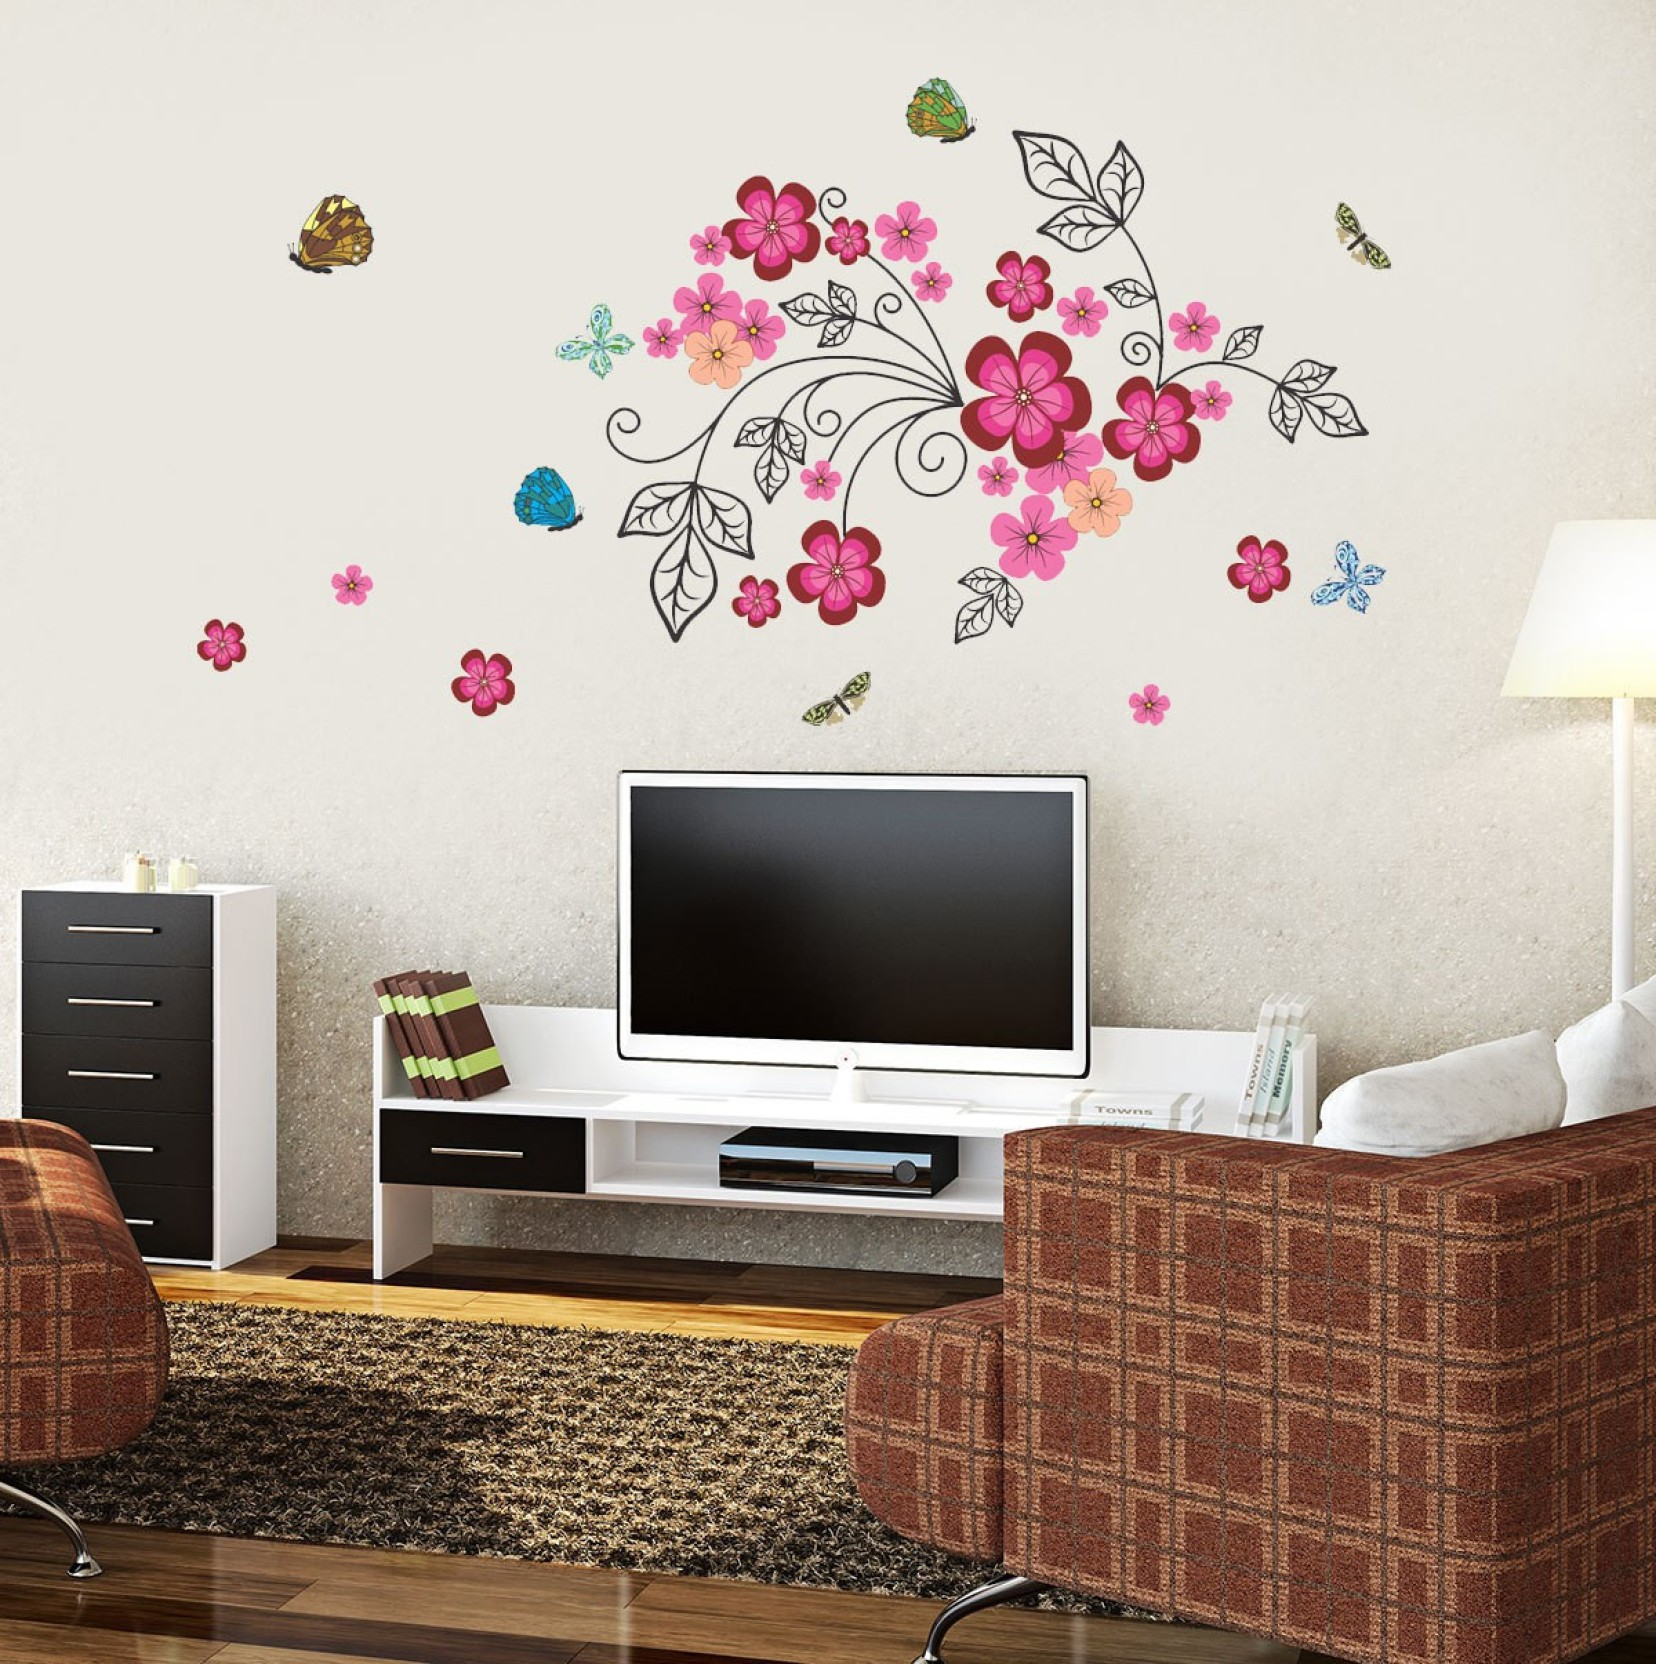 ... Wall Sticker Floral & Botanical Wallpaper. ON OFFER